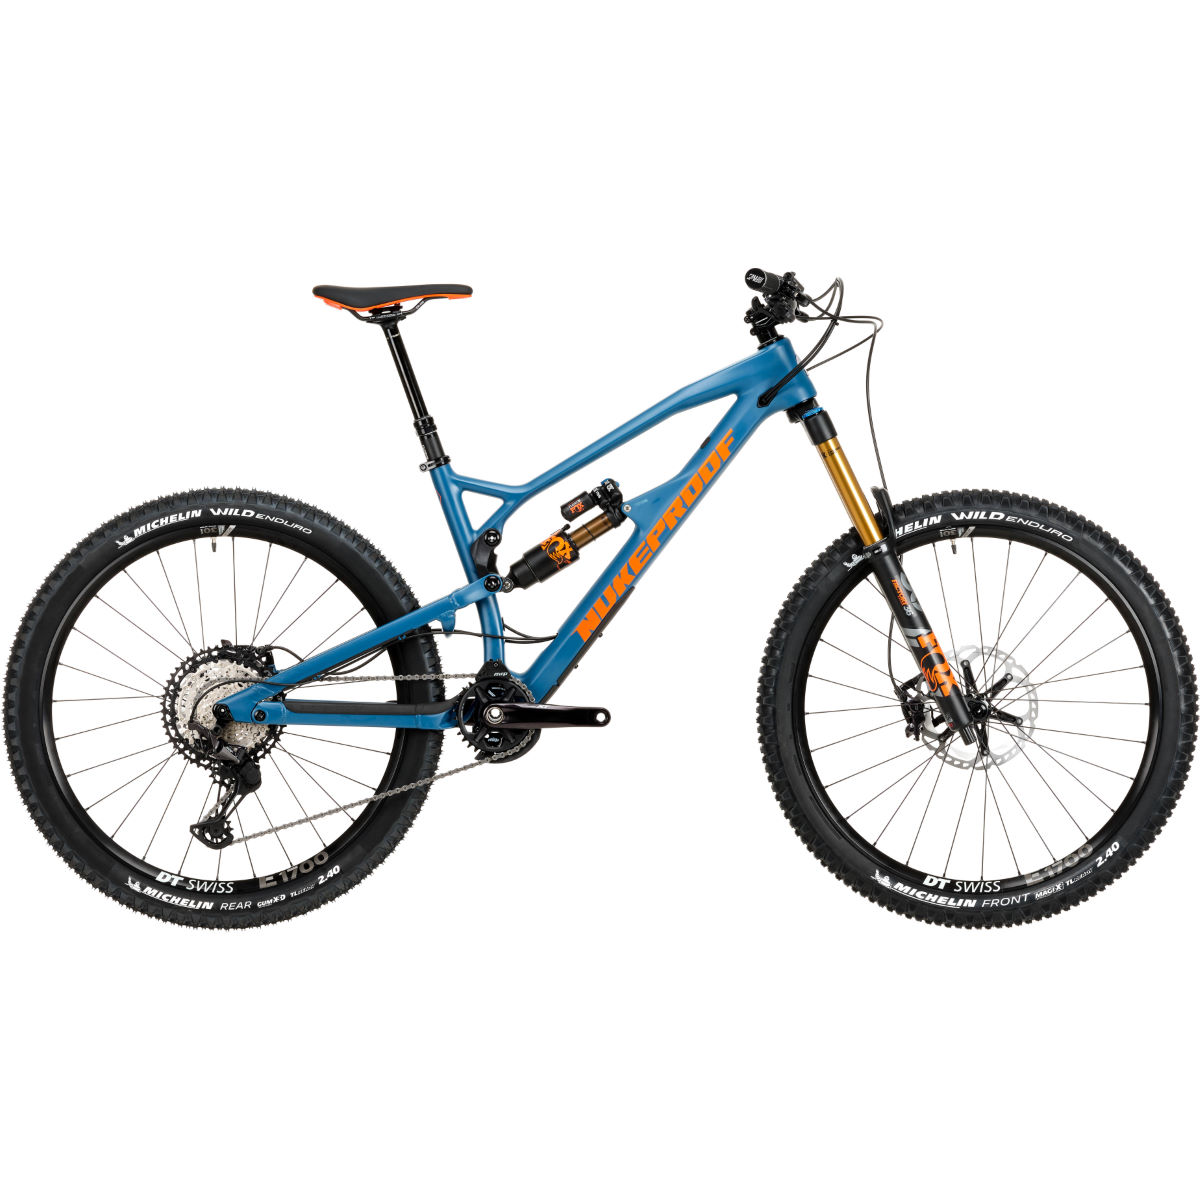 Nukeproof Nukeproof Mega 275 Factory Carbon Bike (XT - 2020)   Full Suspension Mountain Bikes